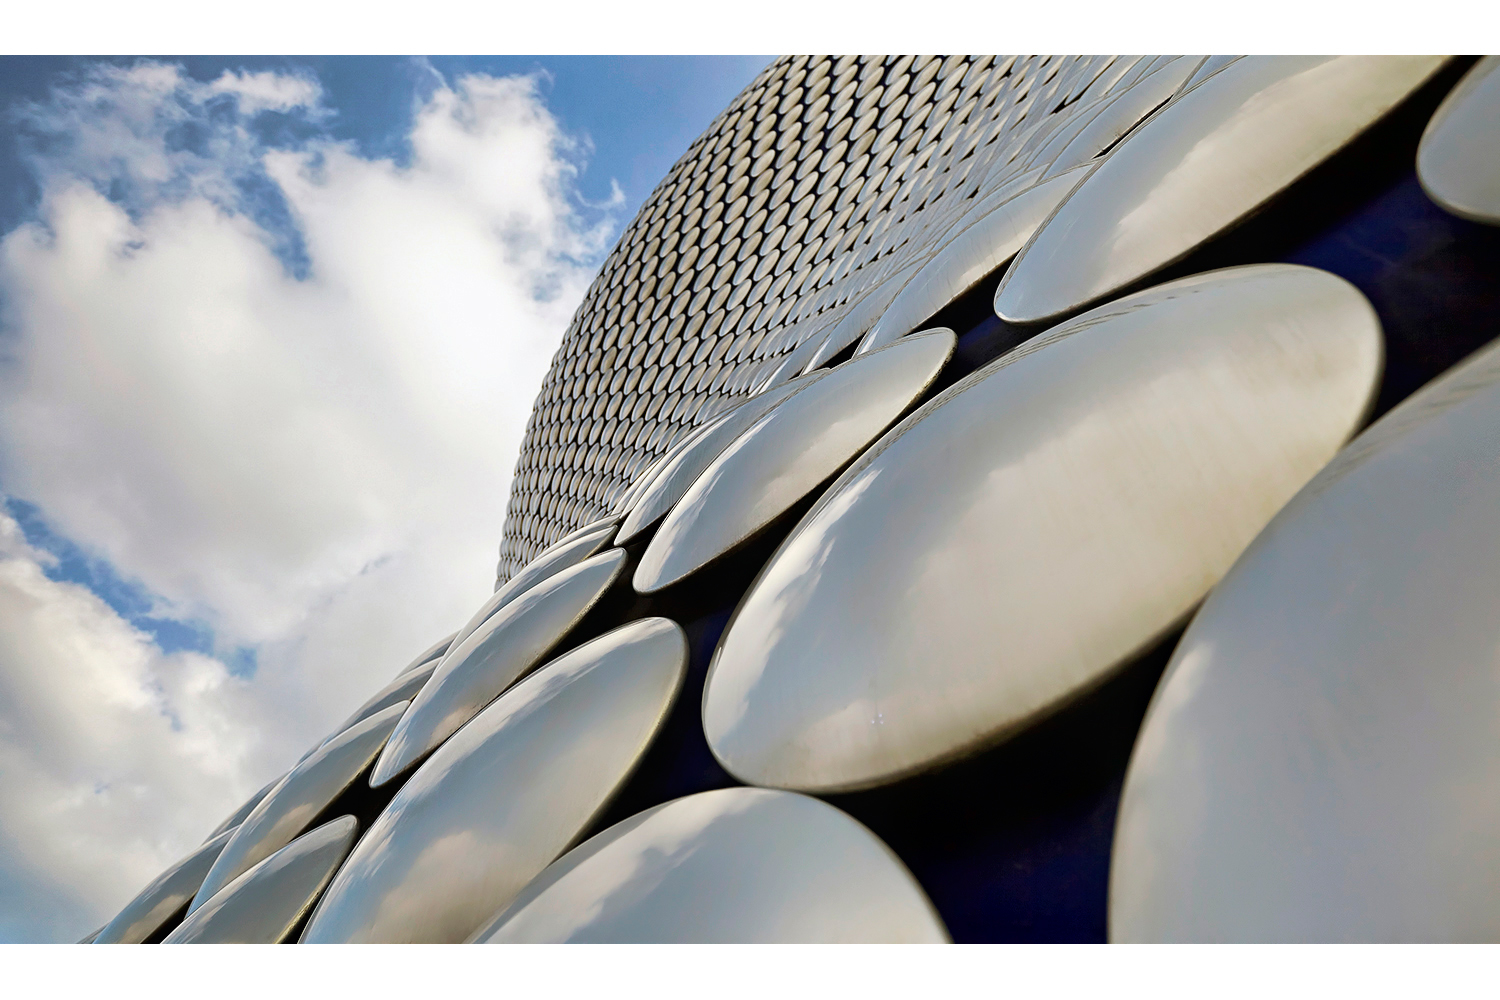 Architectural photography exterior: Selfridges, Birmingham, Midlands, UK. Architects: Jan Kaplický & Amanda Levete. Image (C) Matthewlingphotography.co.uk